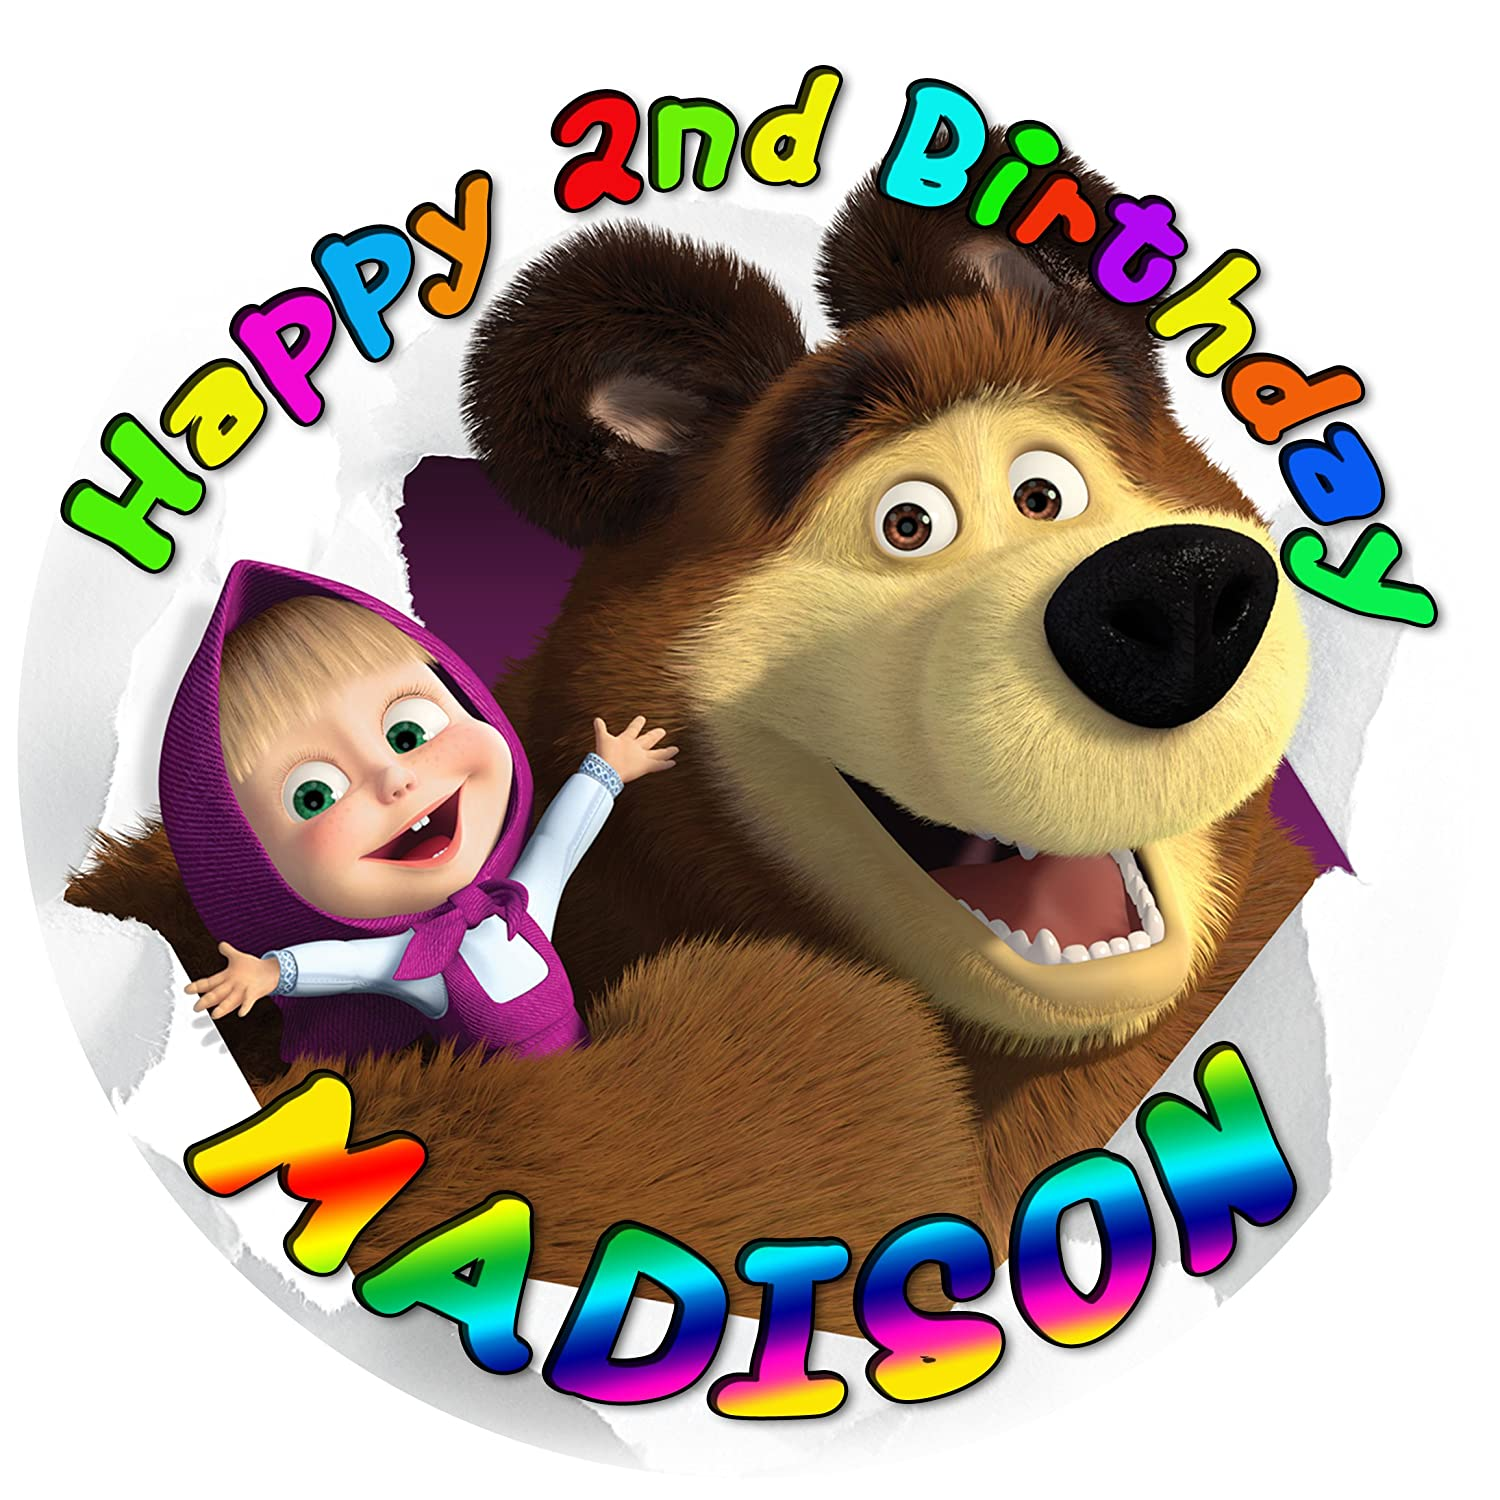 Personalised MASHA AND THE BEAR Birthday Edible Icing Cake Topper